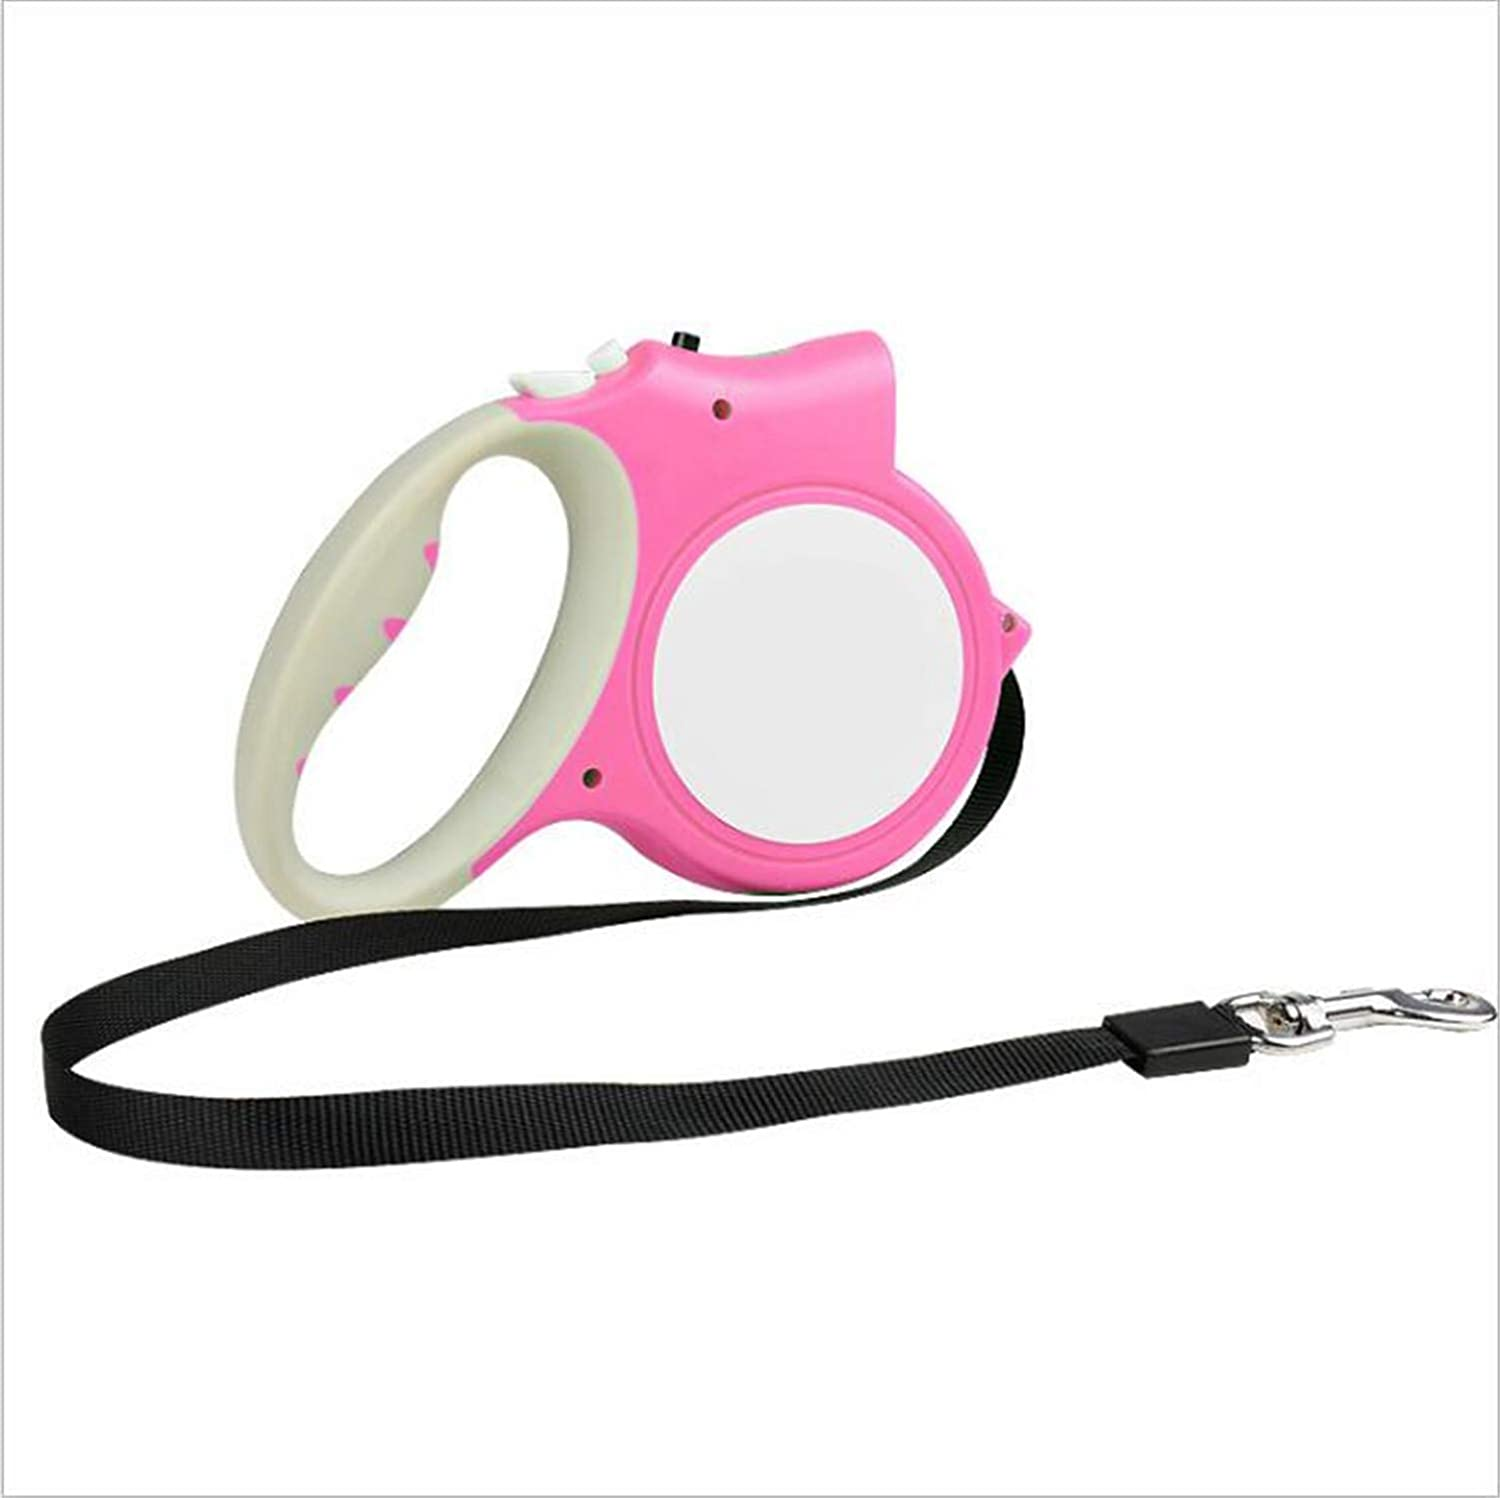 Pink Dog Leash,with Lighting Equipment,Extendable and Retractable Rope, Small Medium Large Dogs,one Hand to Operate,Safe in Night,5M